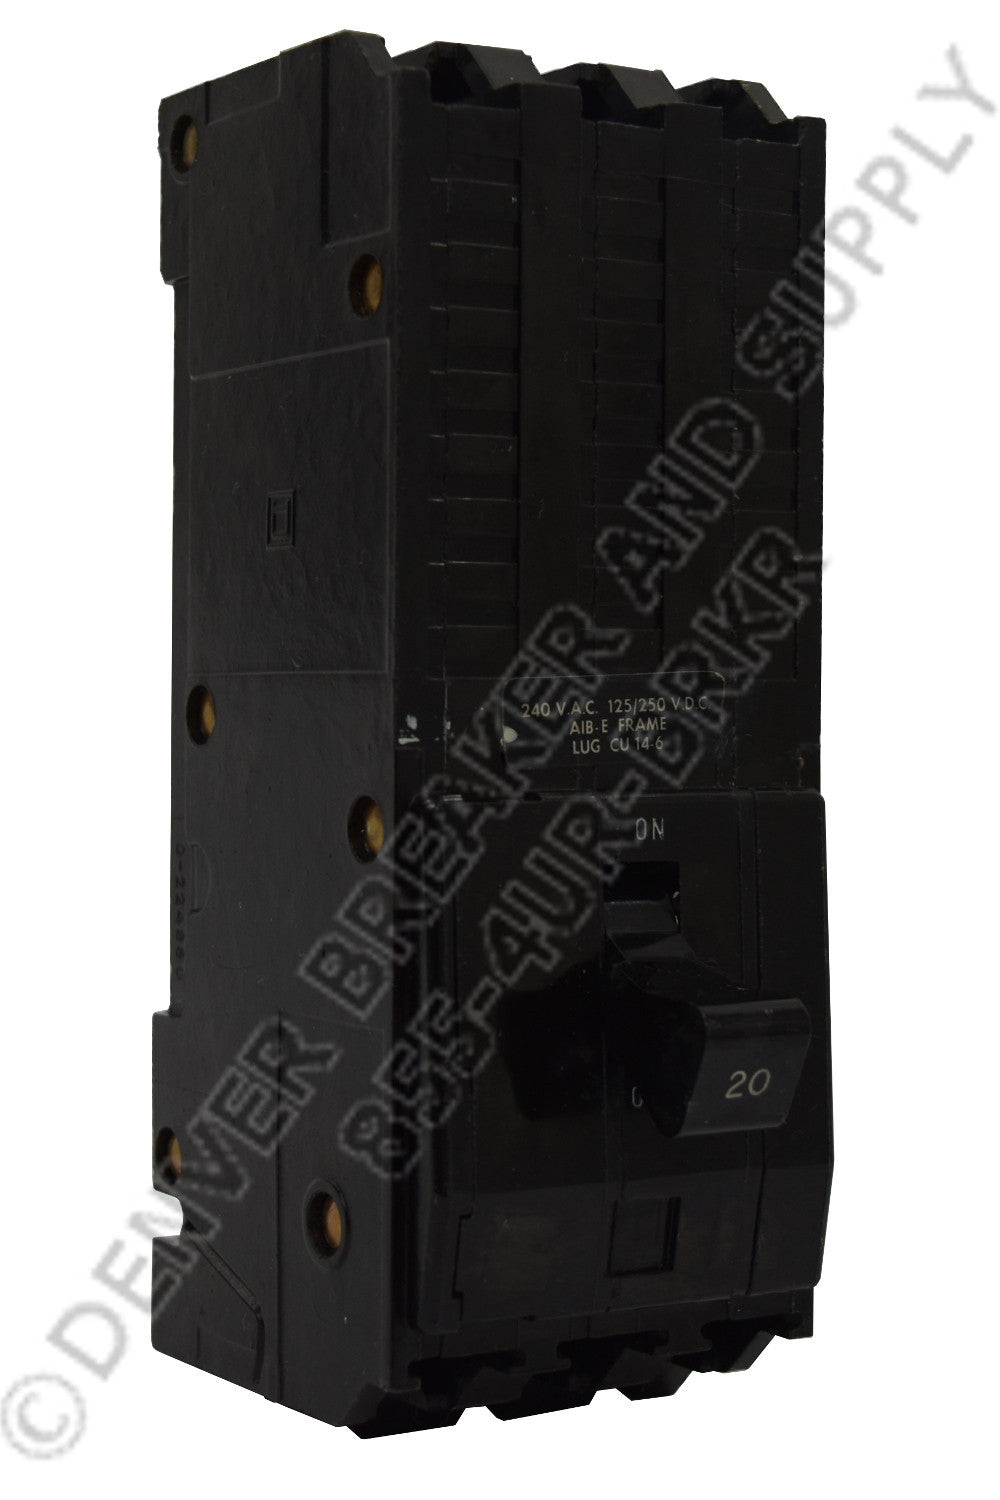 Square D A1B330 Circuit Breakers